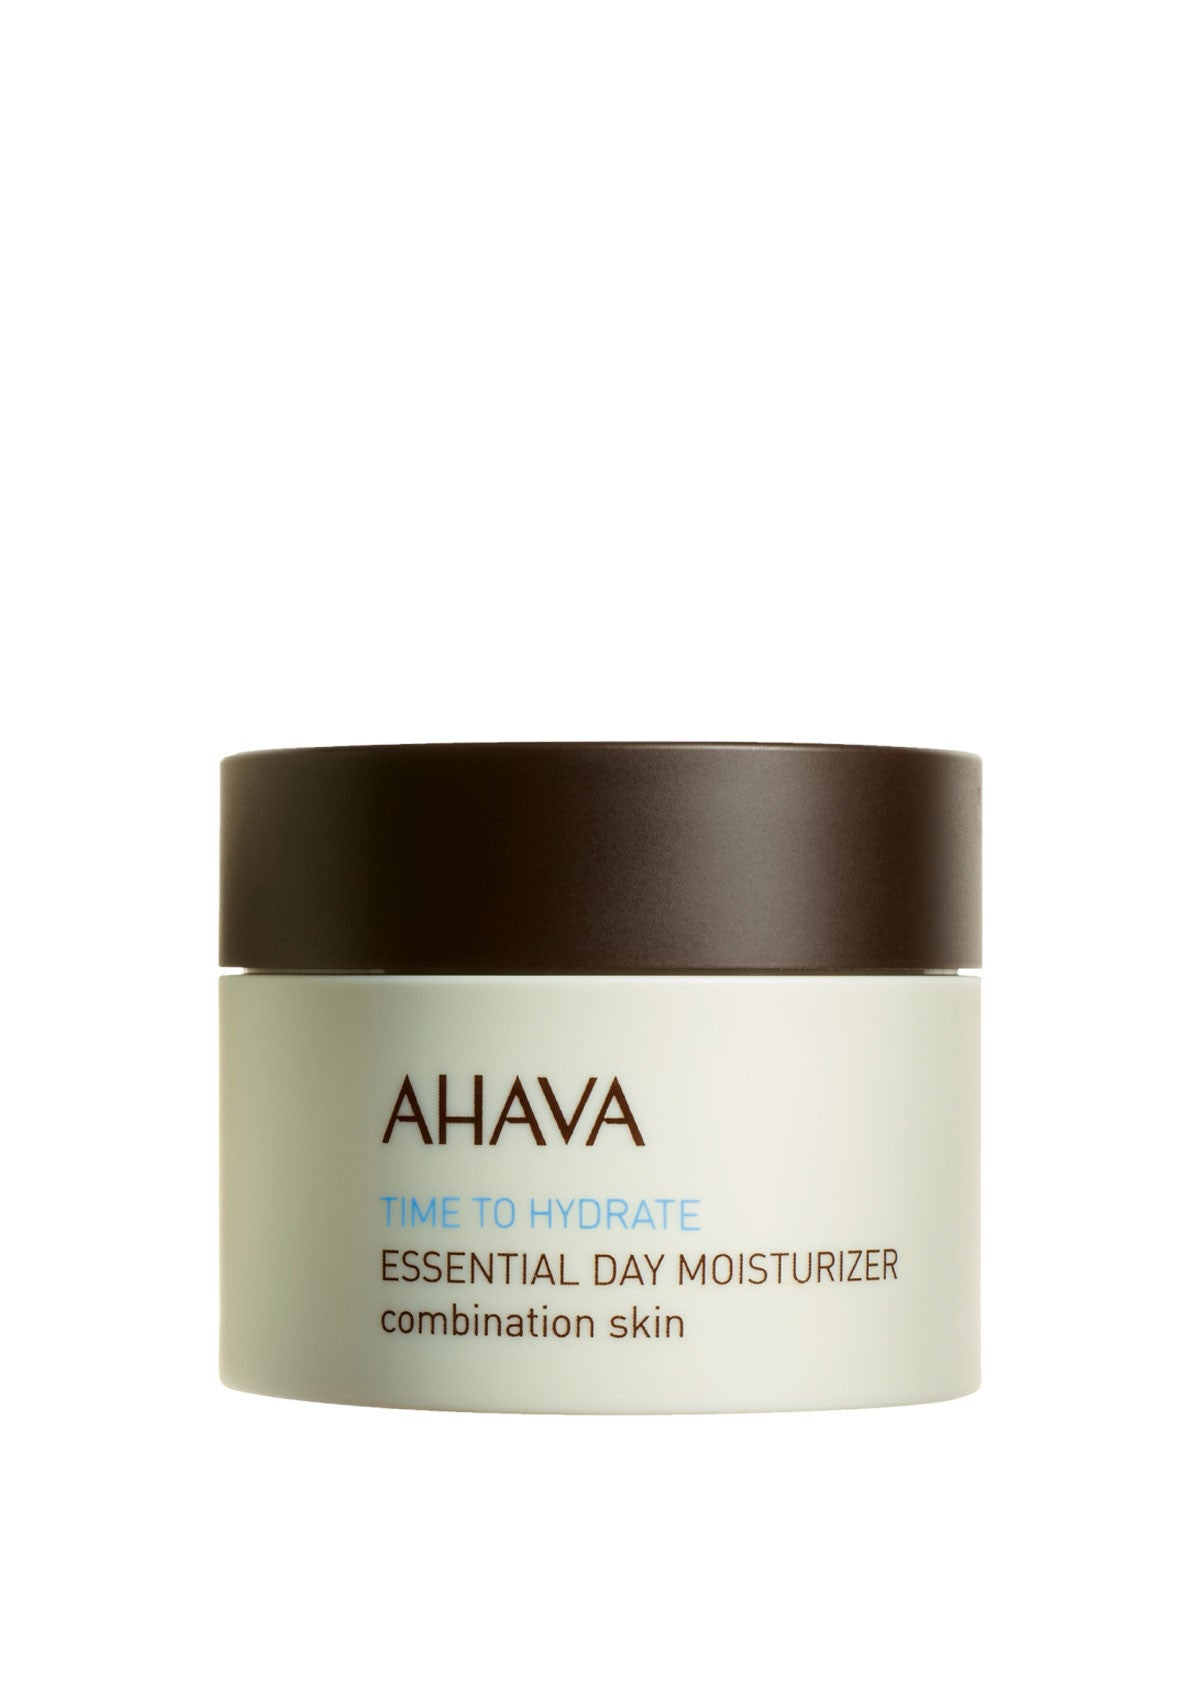 AHAVA - Essential Day Moisturizer - Combination Skin - DeadSeaShop.co.uk